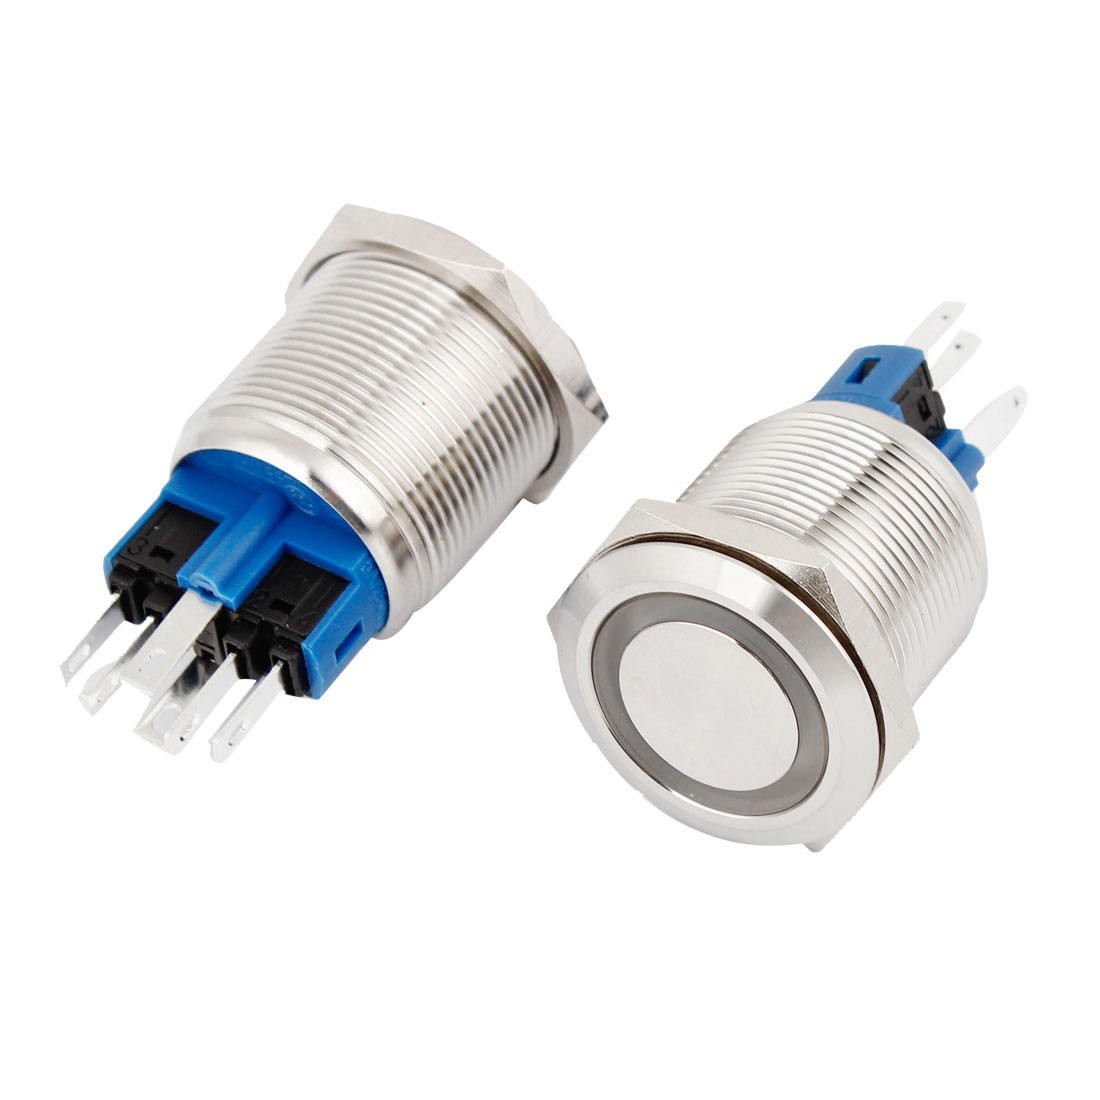 2 Pcs 22mm 12V Blue LED Lighted Push Button SPDT Self-Locking Switch for Car Truck